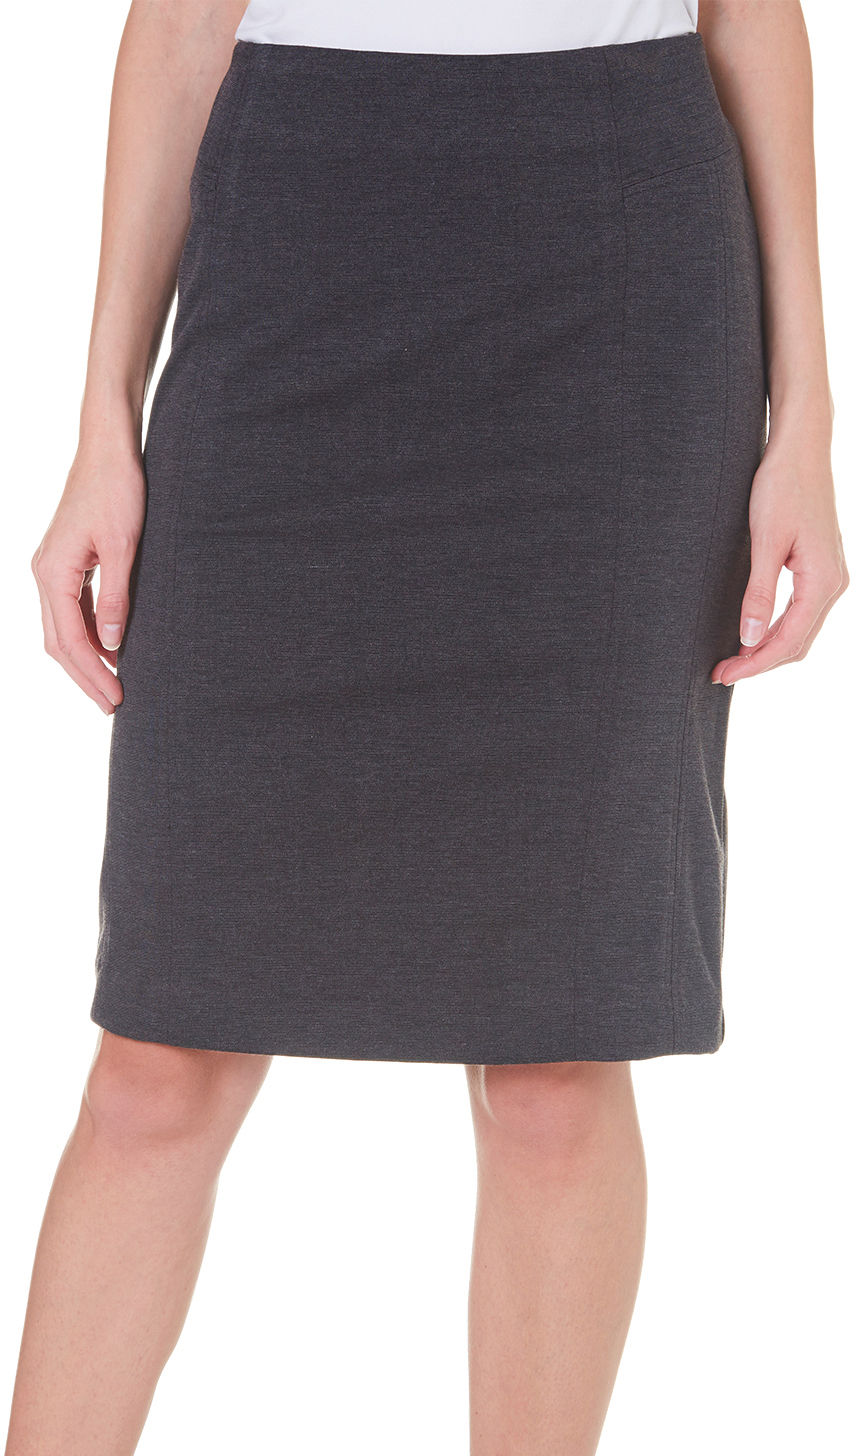 counterparts womens seamed ponte knit skirt ebay